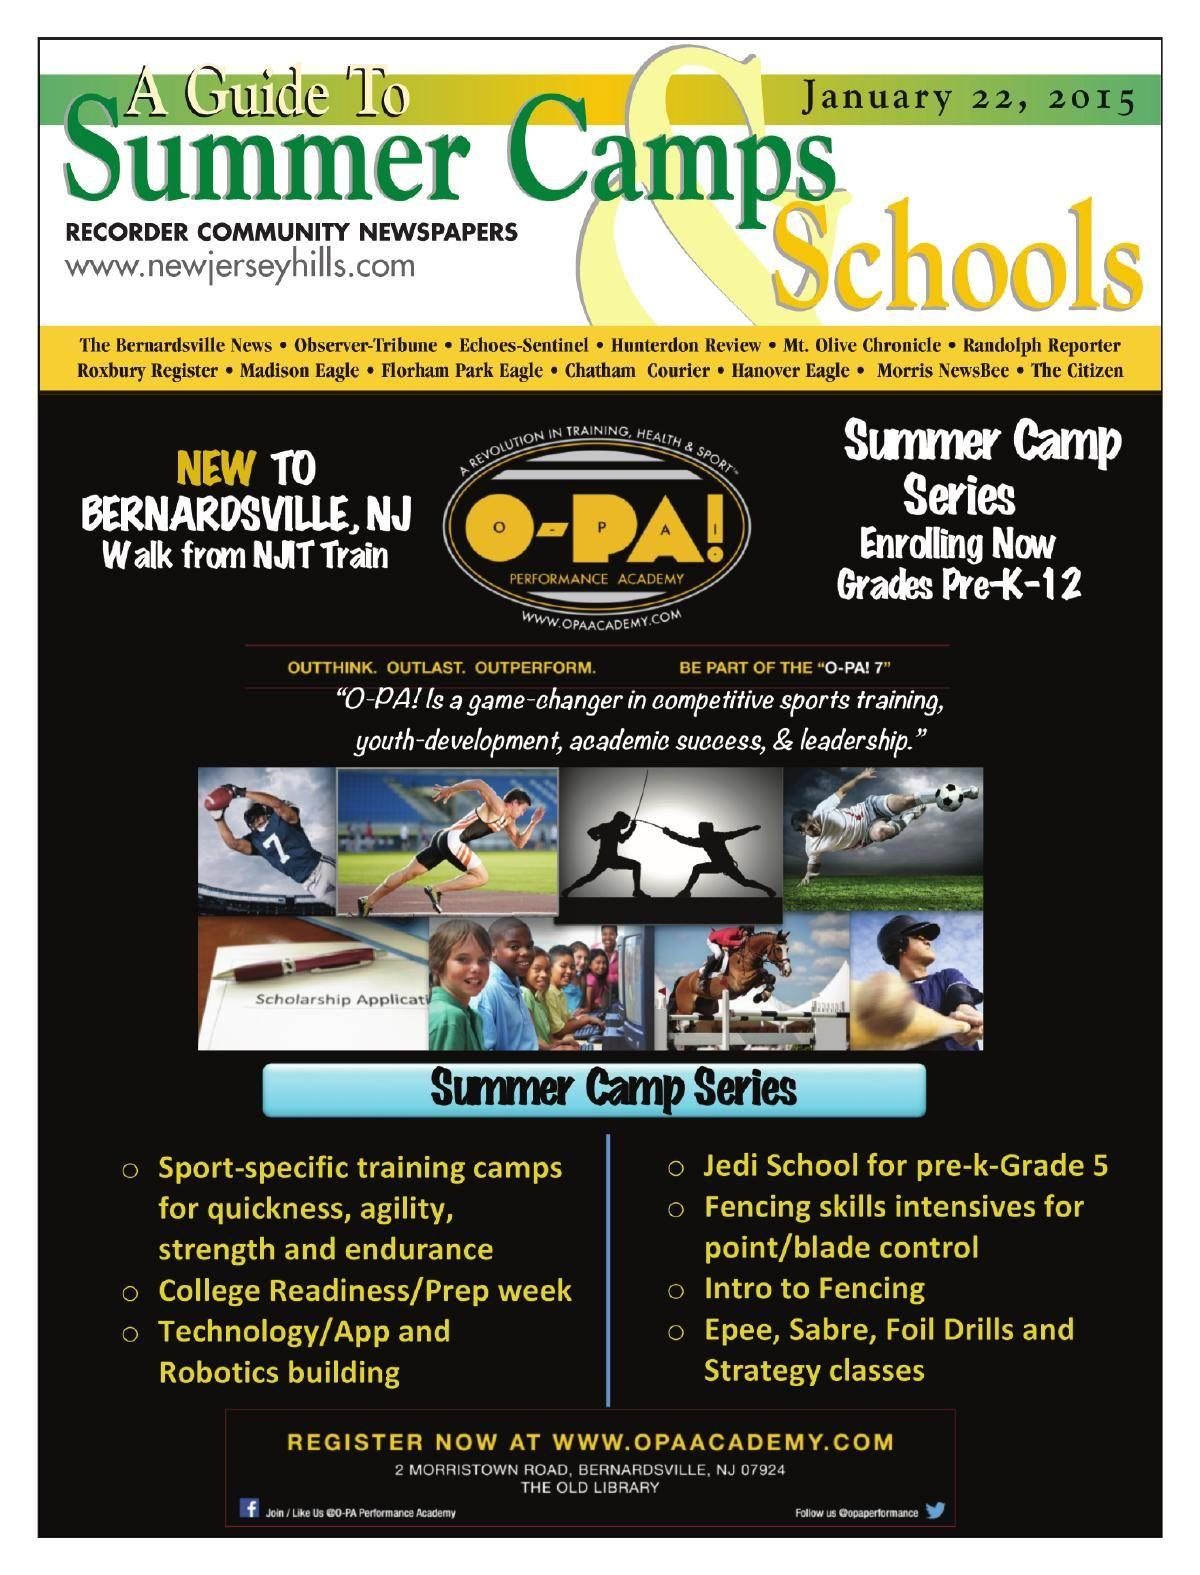 Summer Camp and School Guide